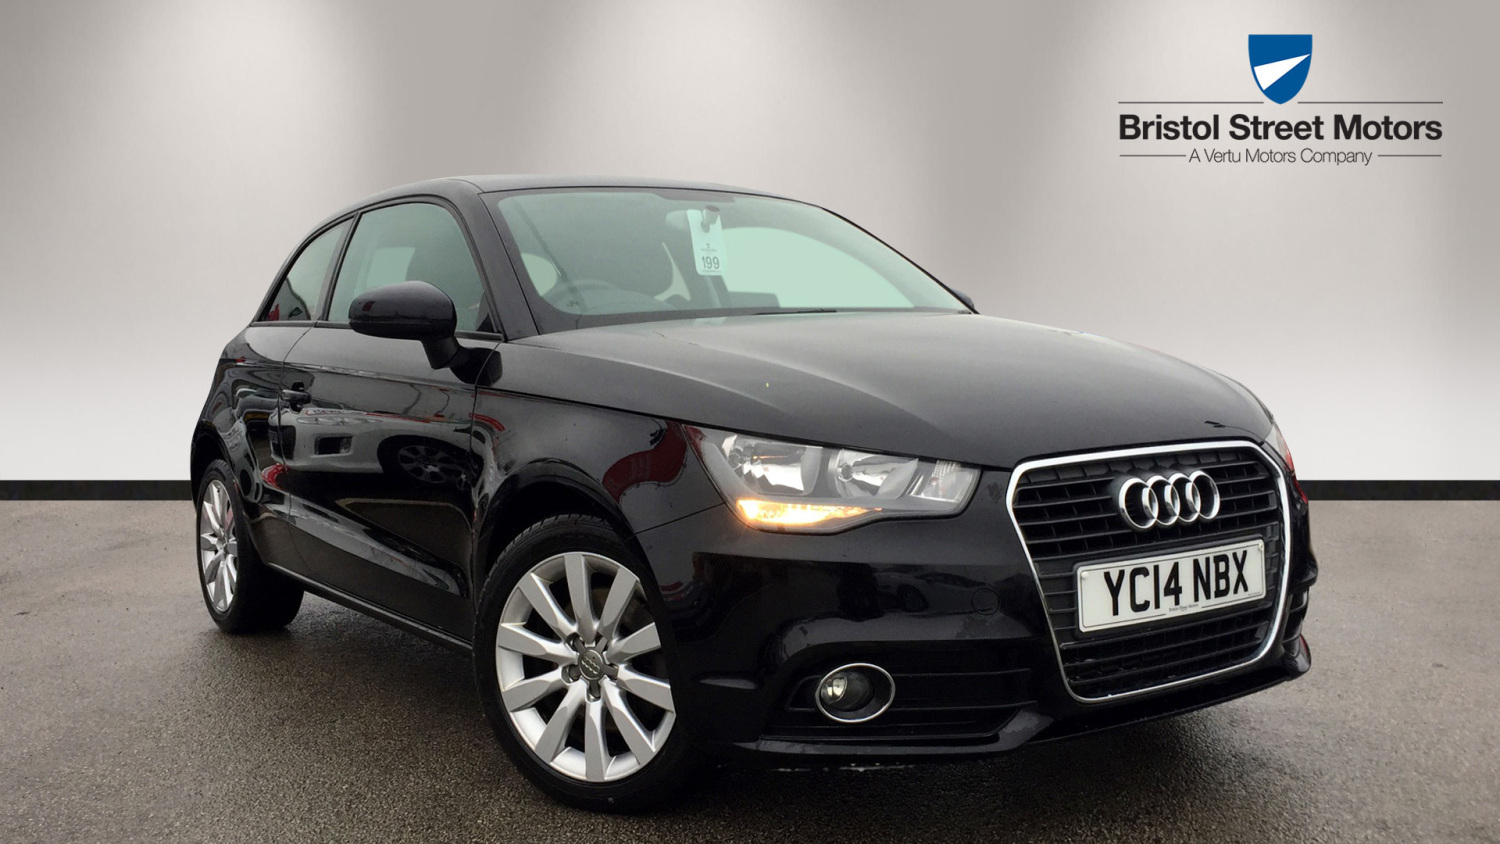 used audi a1 1 6 tdi sport 3dr diesel hatchback for sale bristol street motors. Black Bedroom Furniture Sets. Home Design Ideas